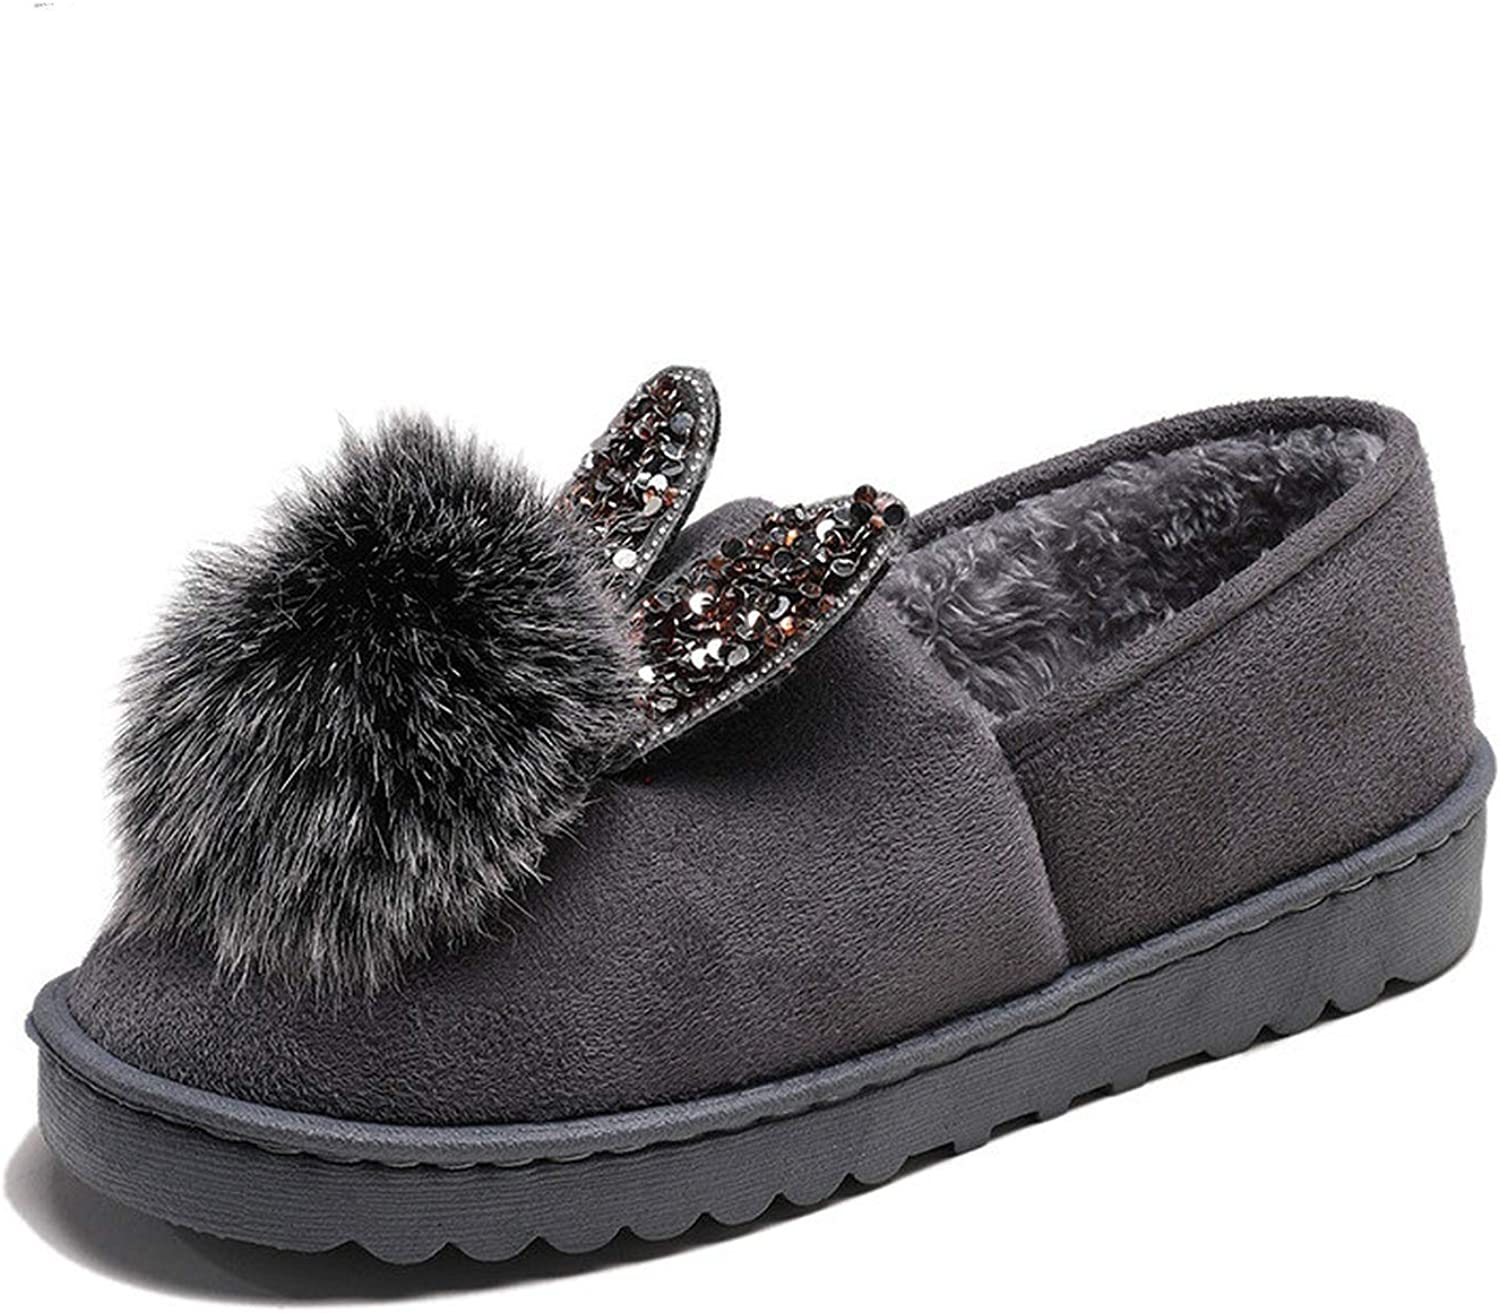 Women Snow Boots Flat Winter Casual shoes Woman Bling Sweet Platform Round Toe Slip On able